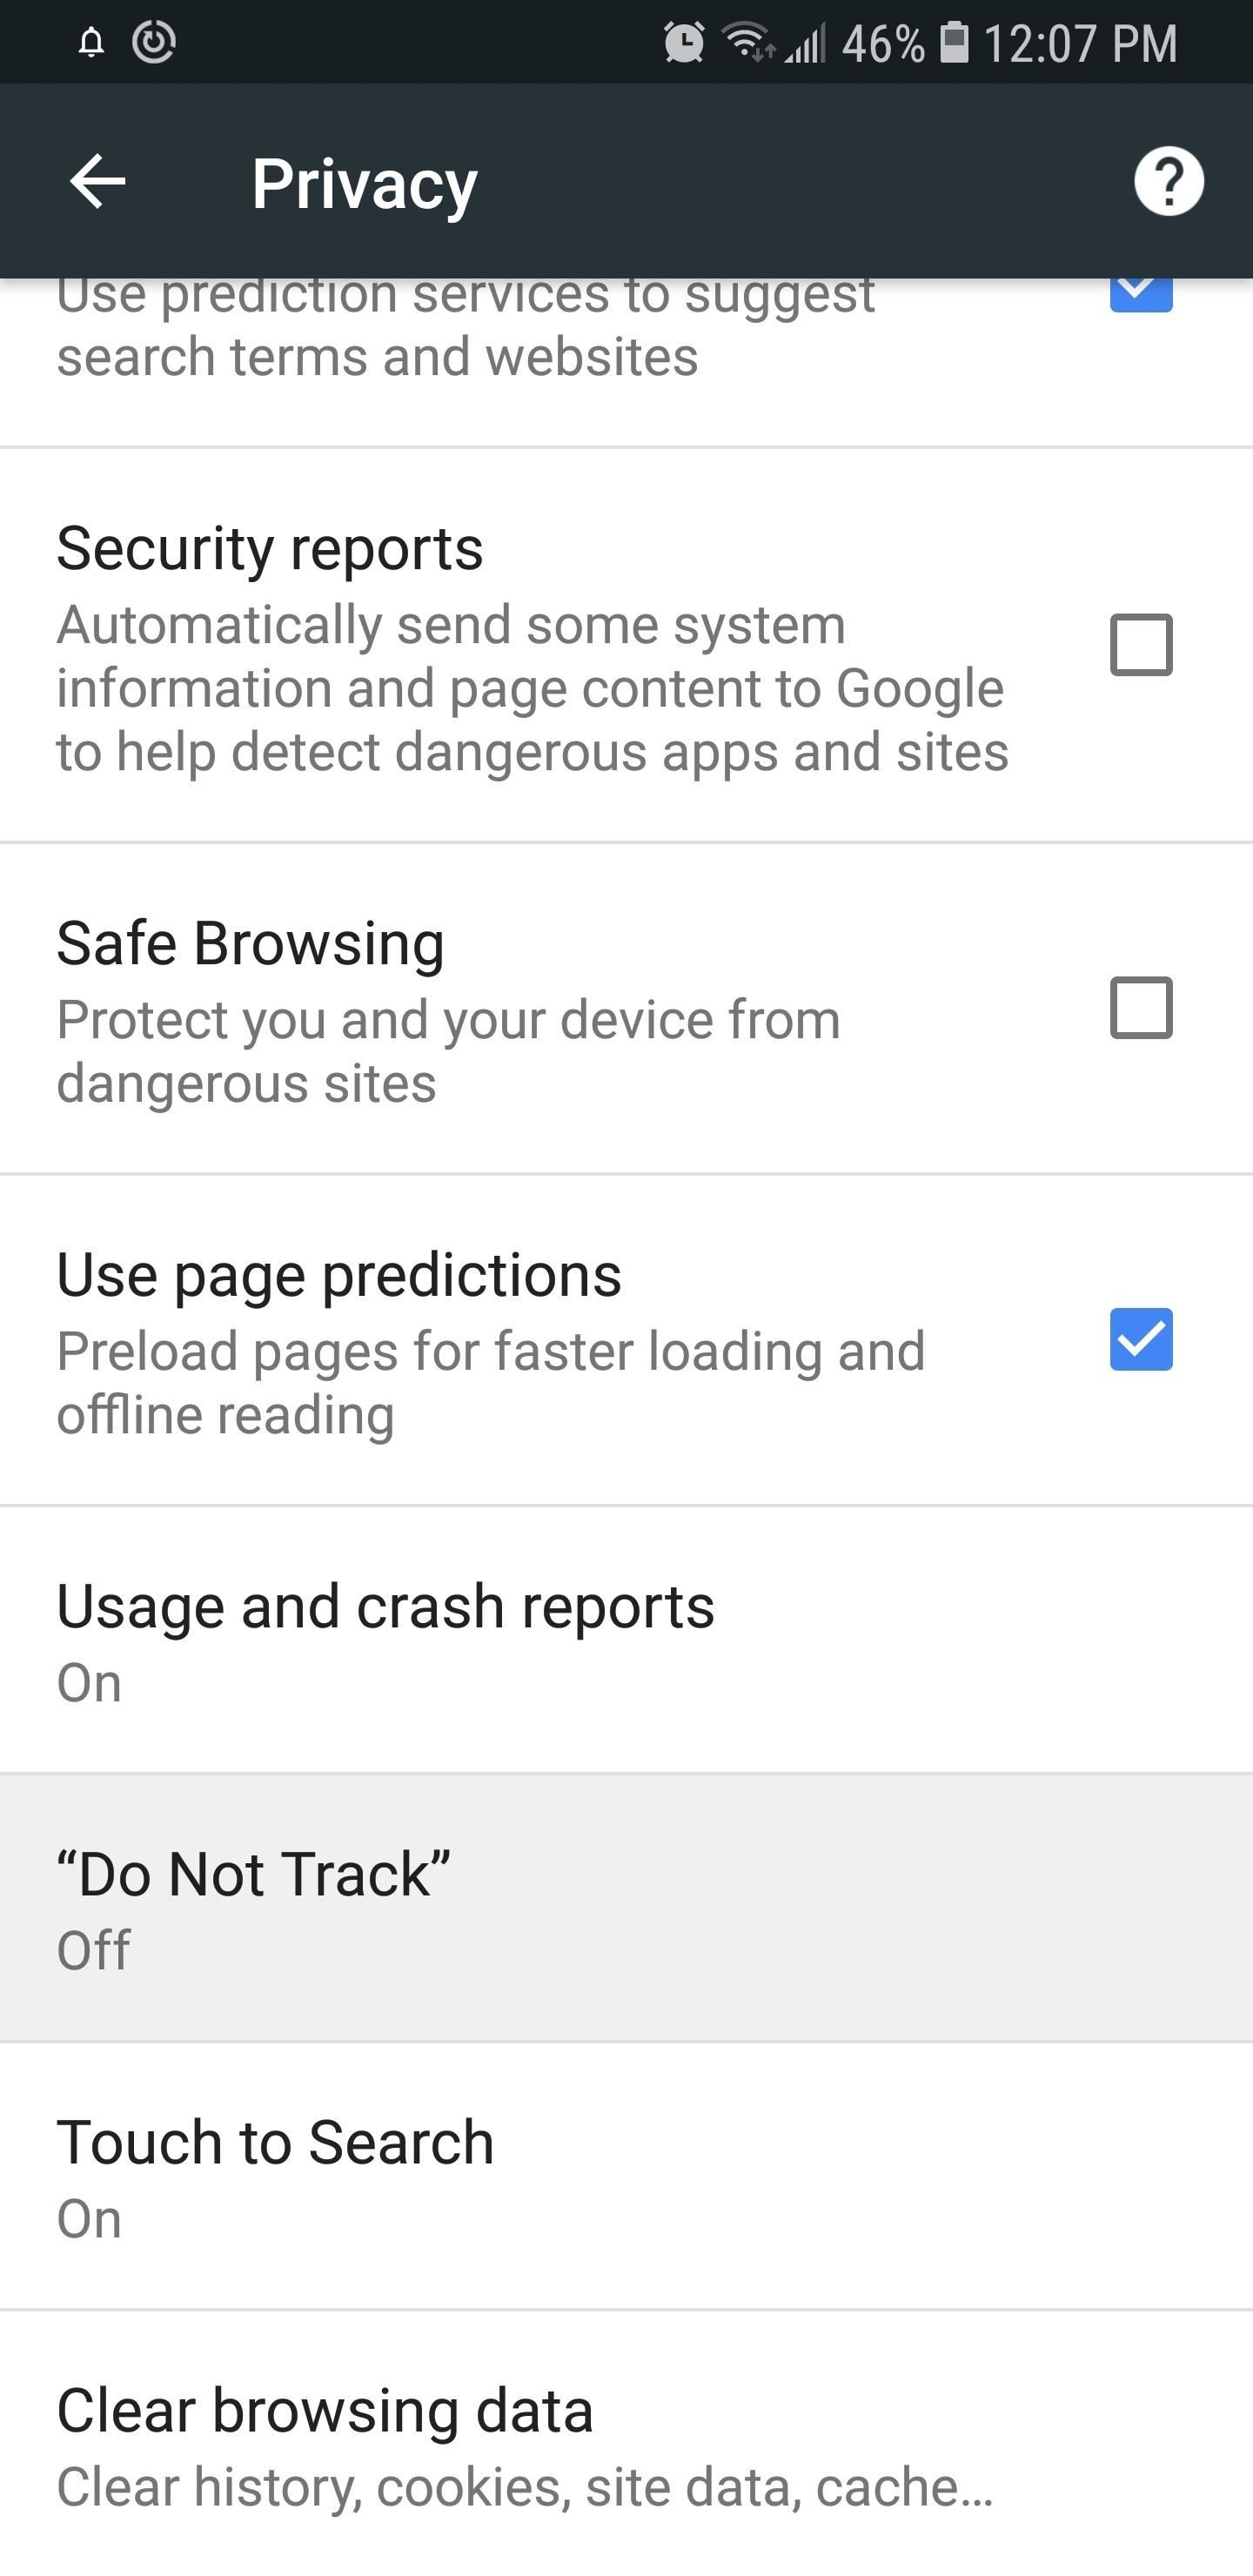 Chrome 101: How to Set Your Privacy & Choose Which Data to Share with Google